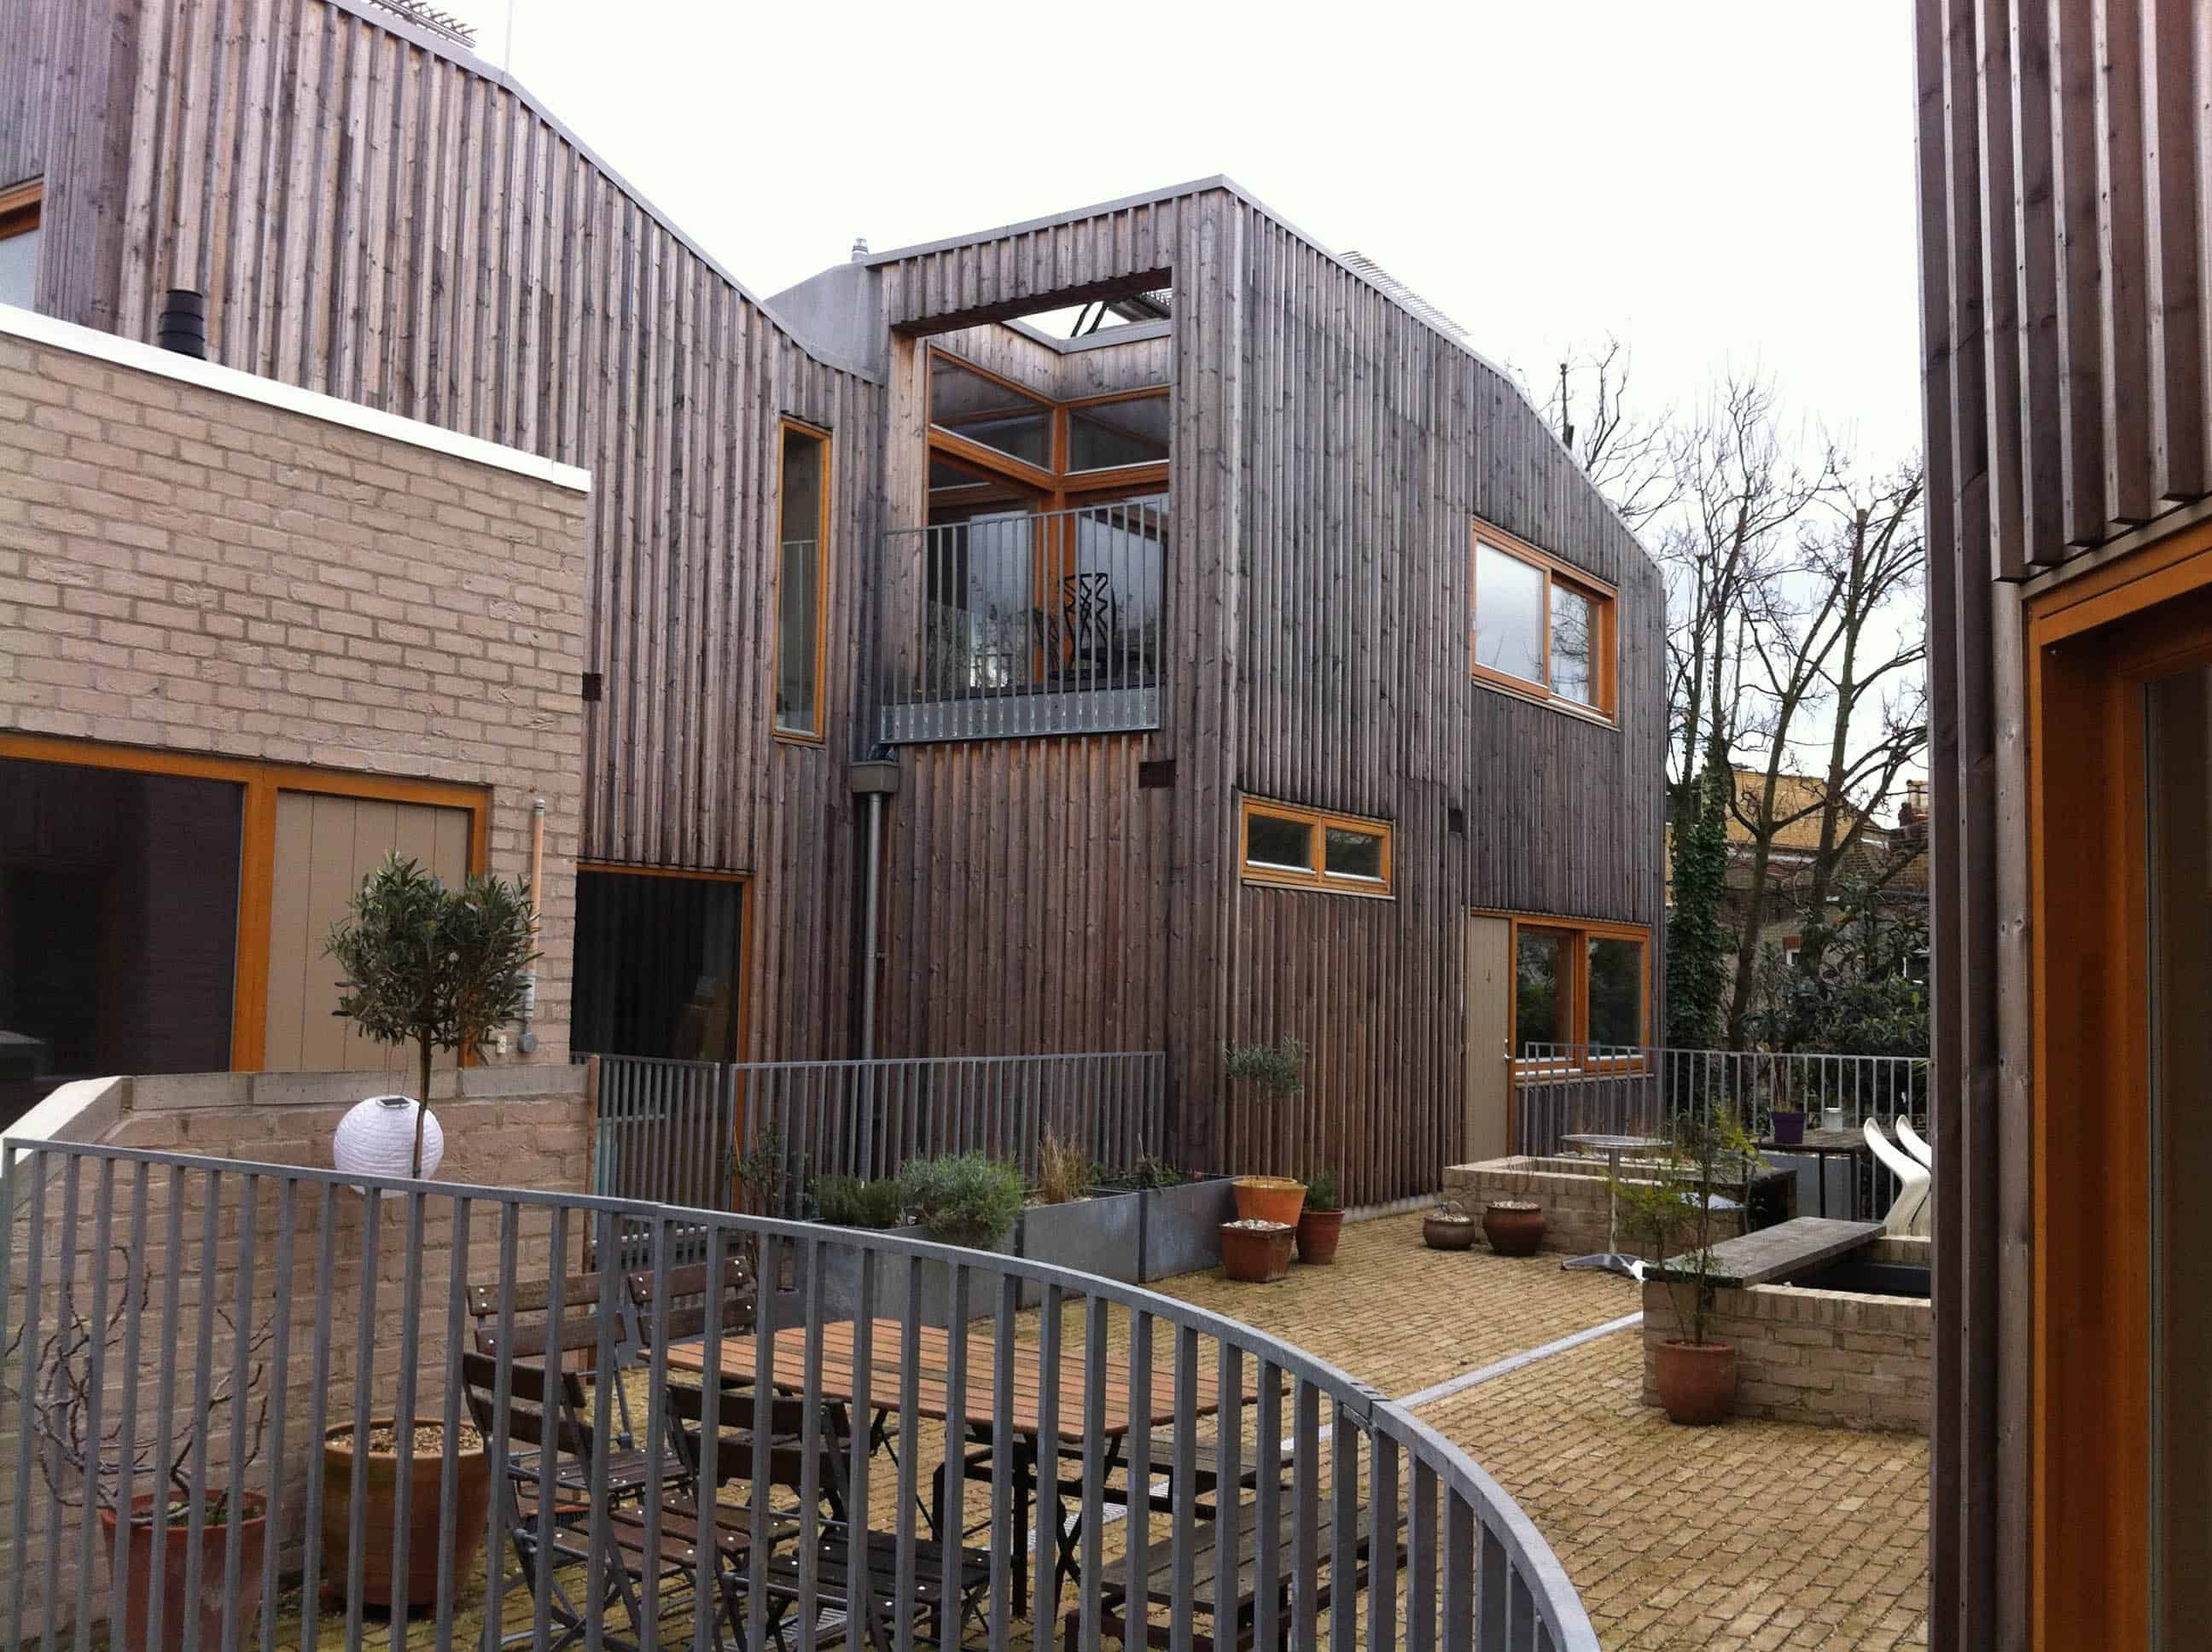 Co-housing series 3: Working Together